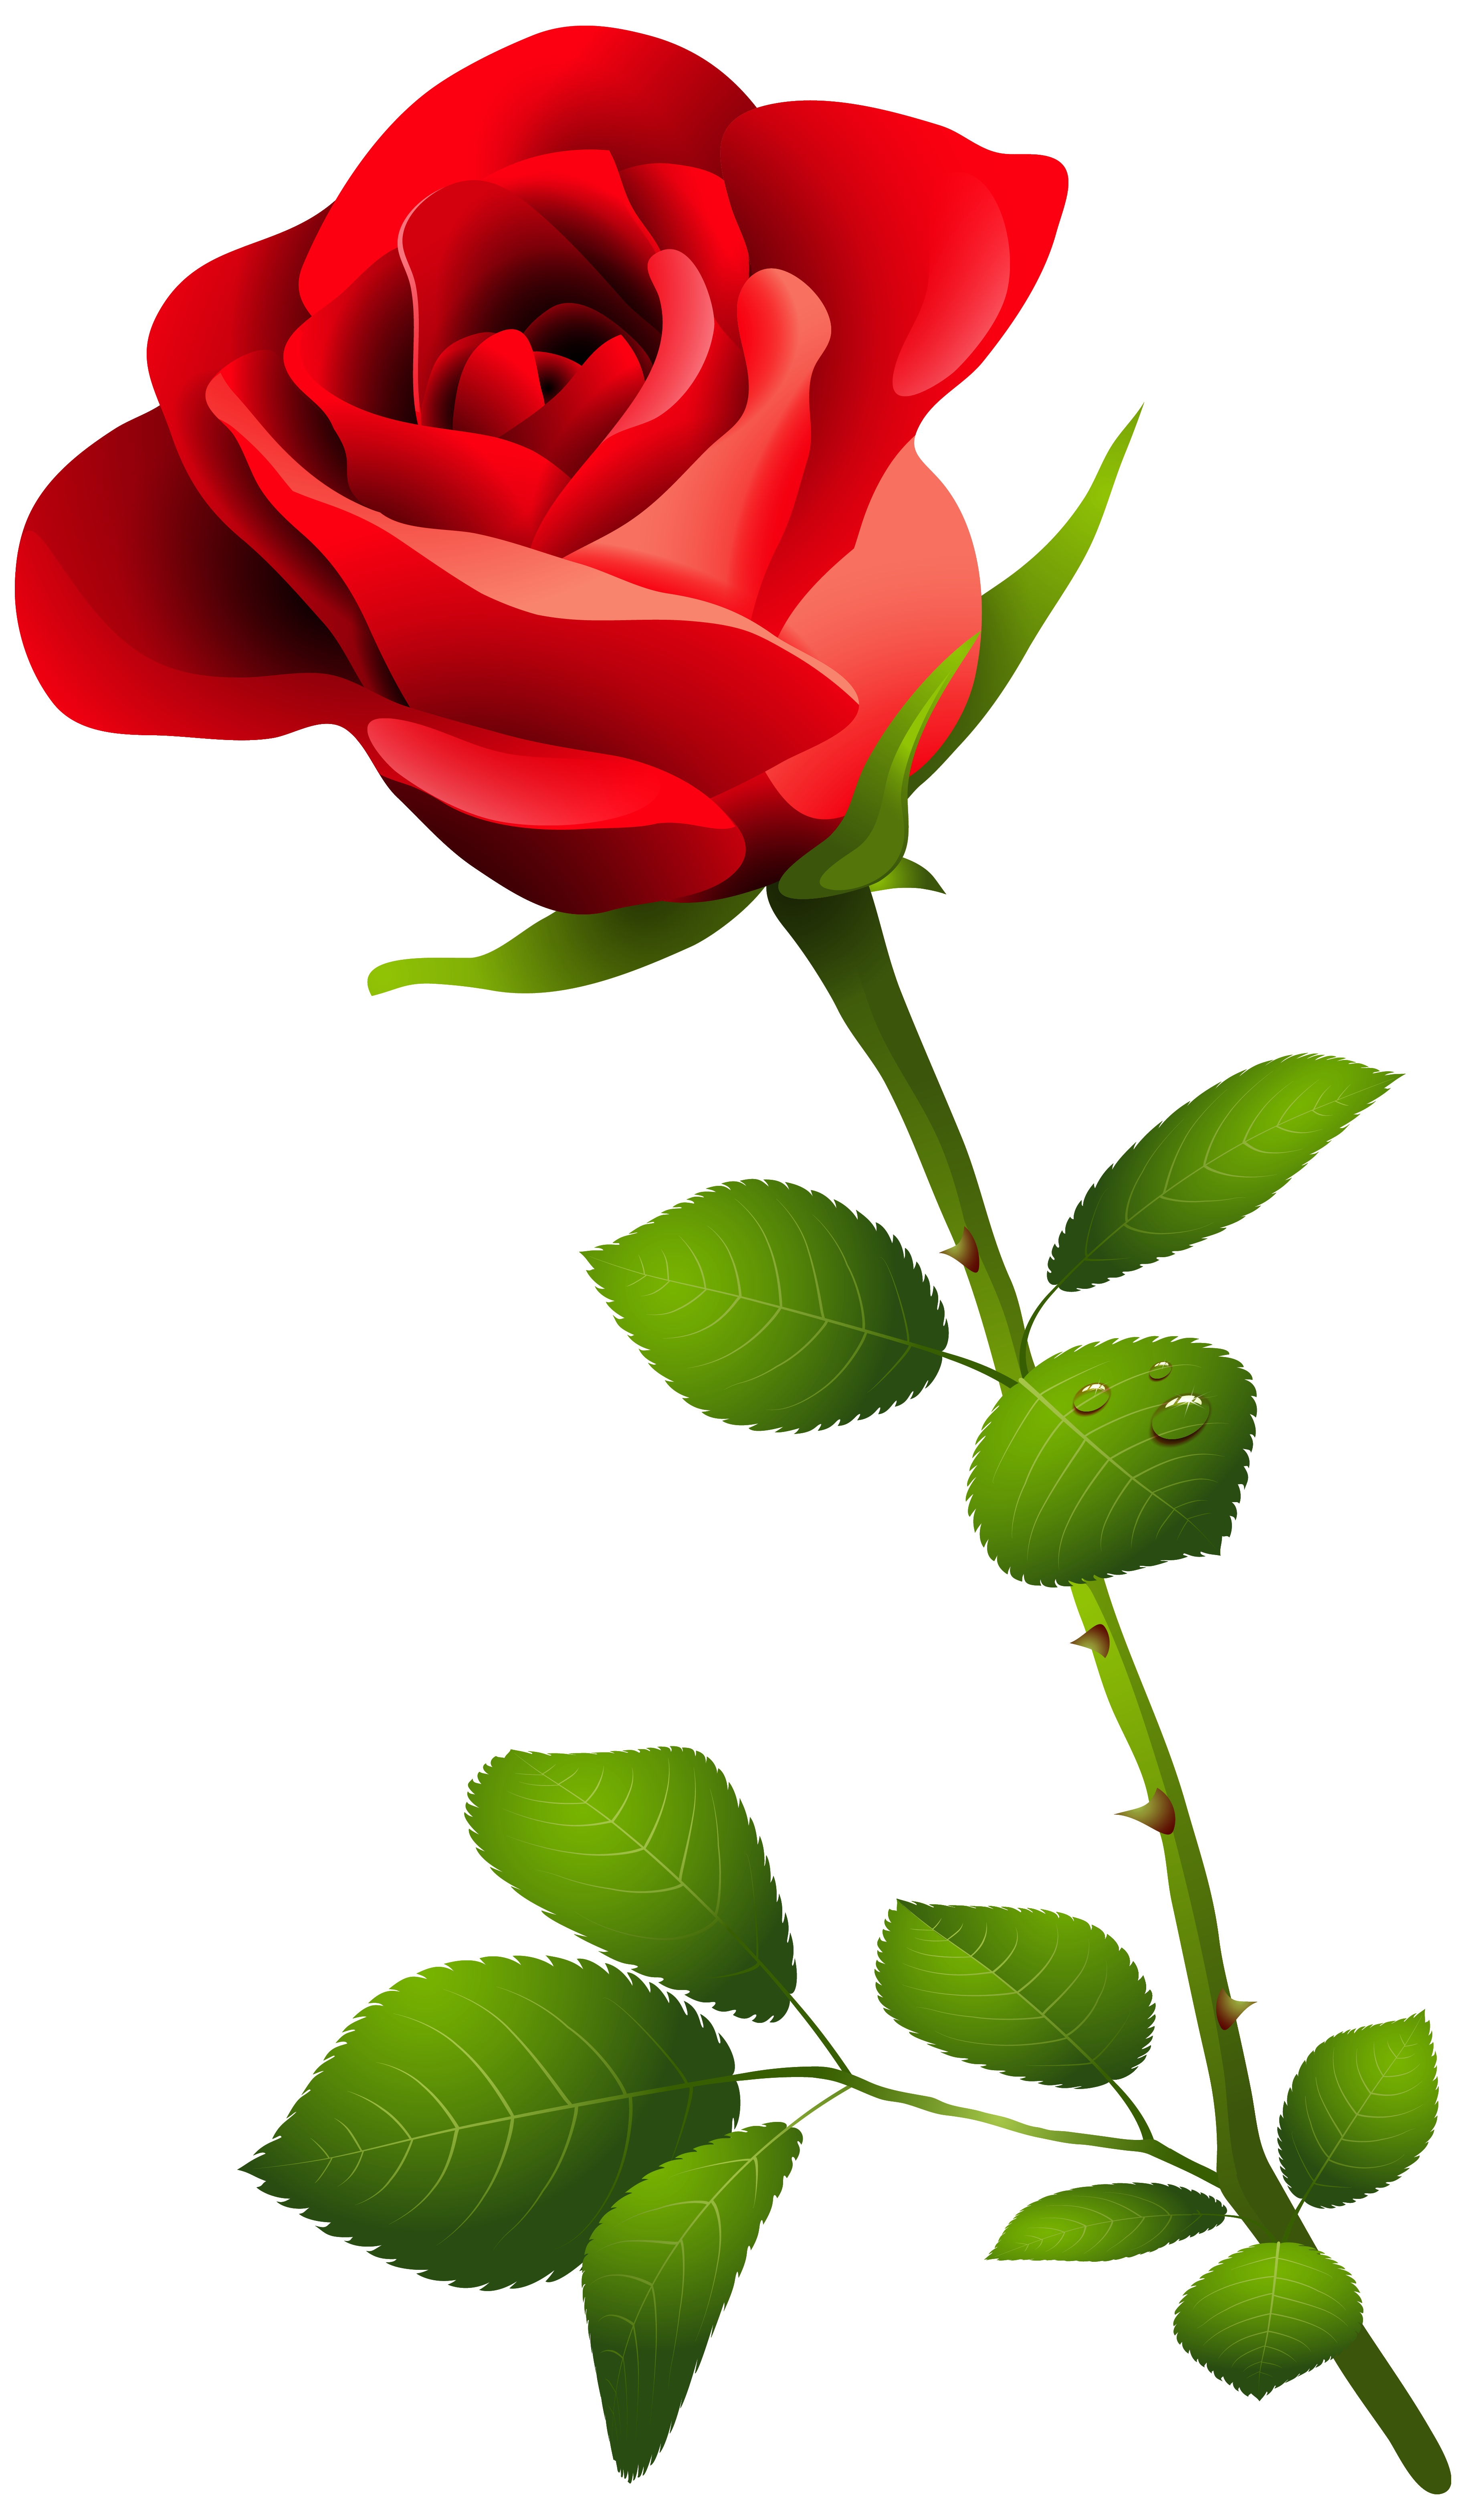 Nectar clipart red rose Clipart With Image Rose Image